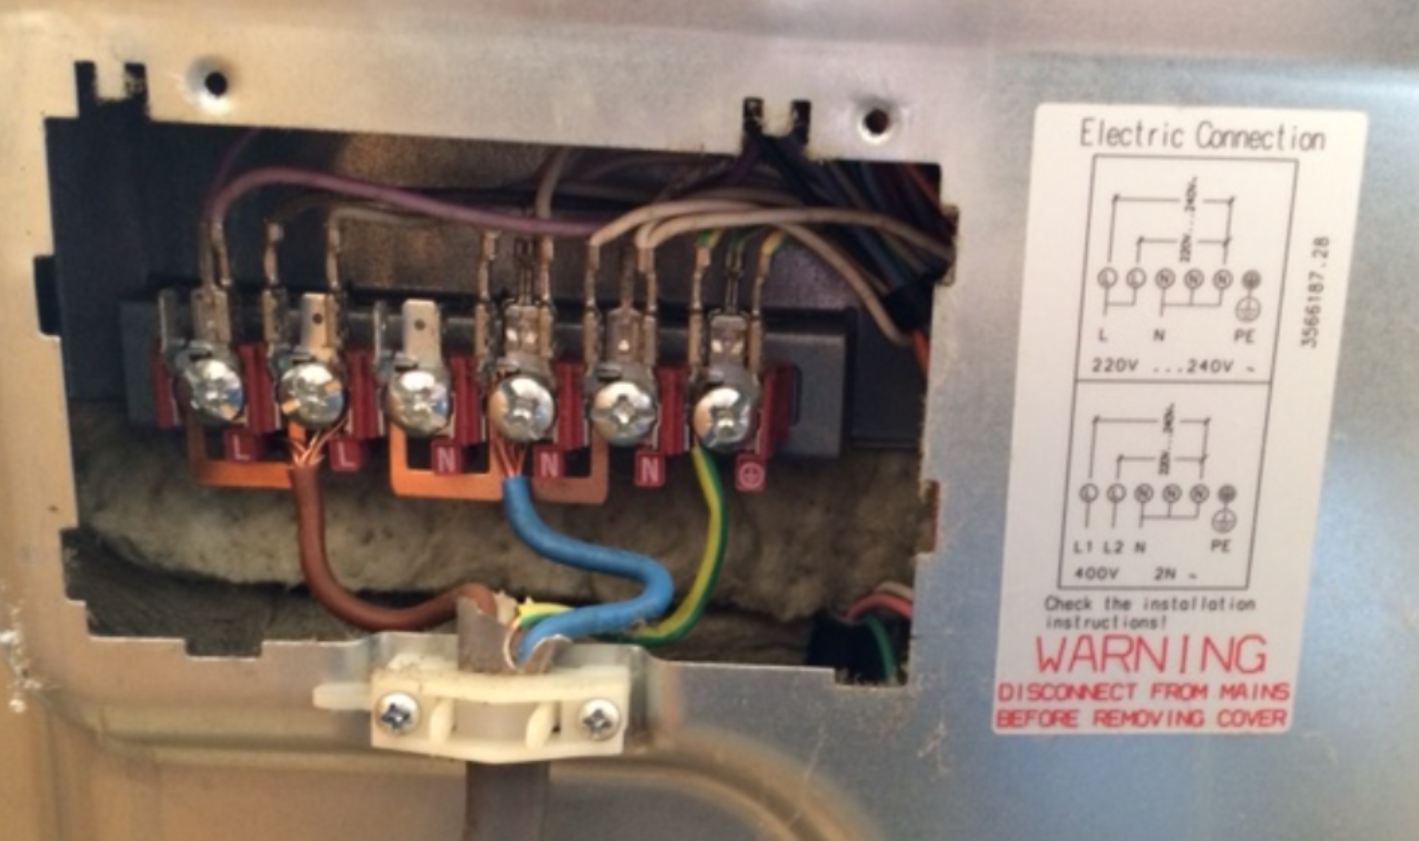 Wiring zanussi cooker wiring circuit wiring zanussi cooker residential electrical symbols u2022 rh bookmyad co wiring diagram for zanussi cooker zanussi malaysia asfbconference2016 Choice Image